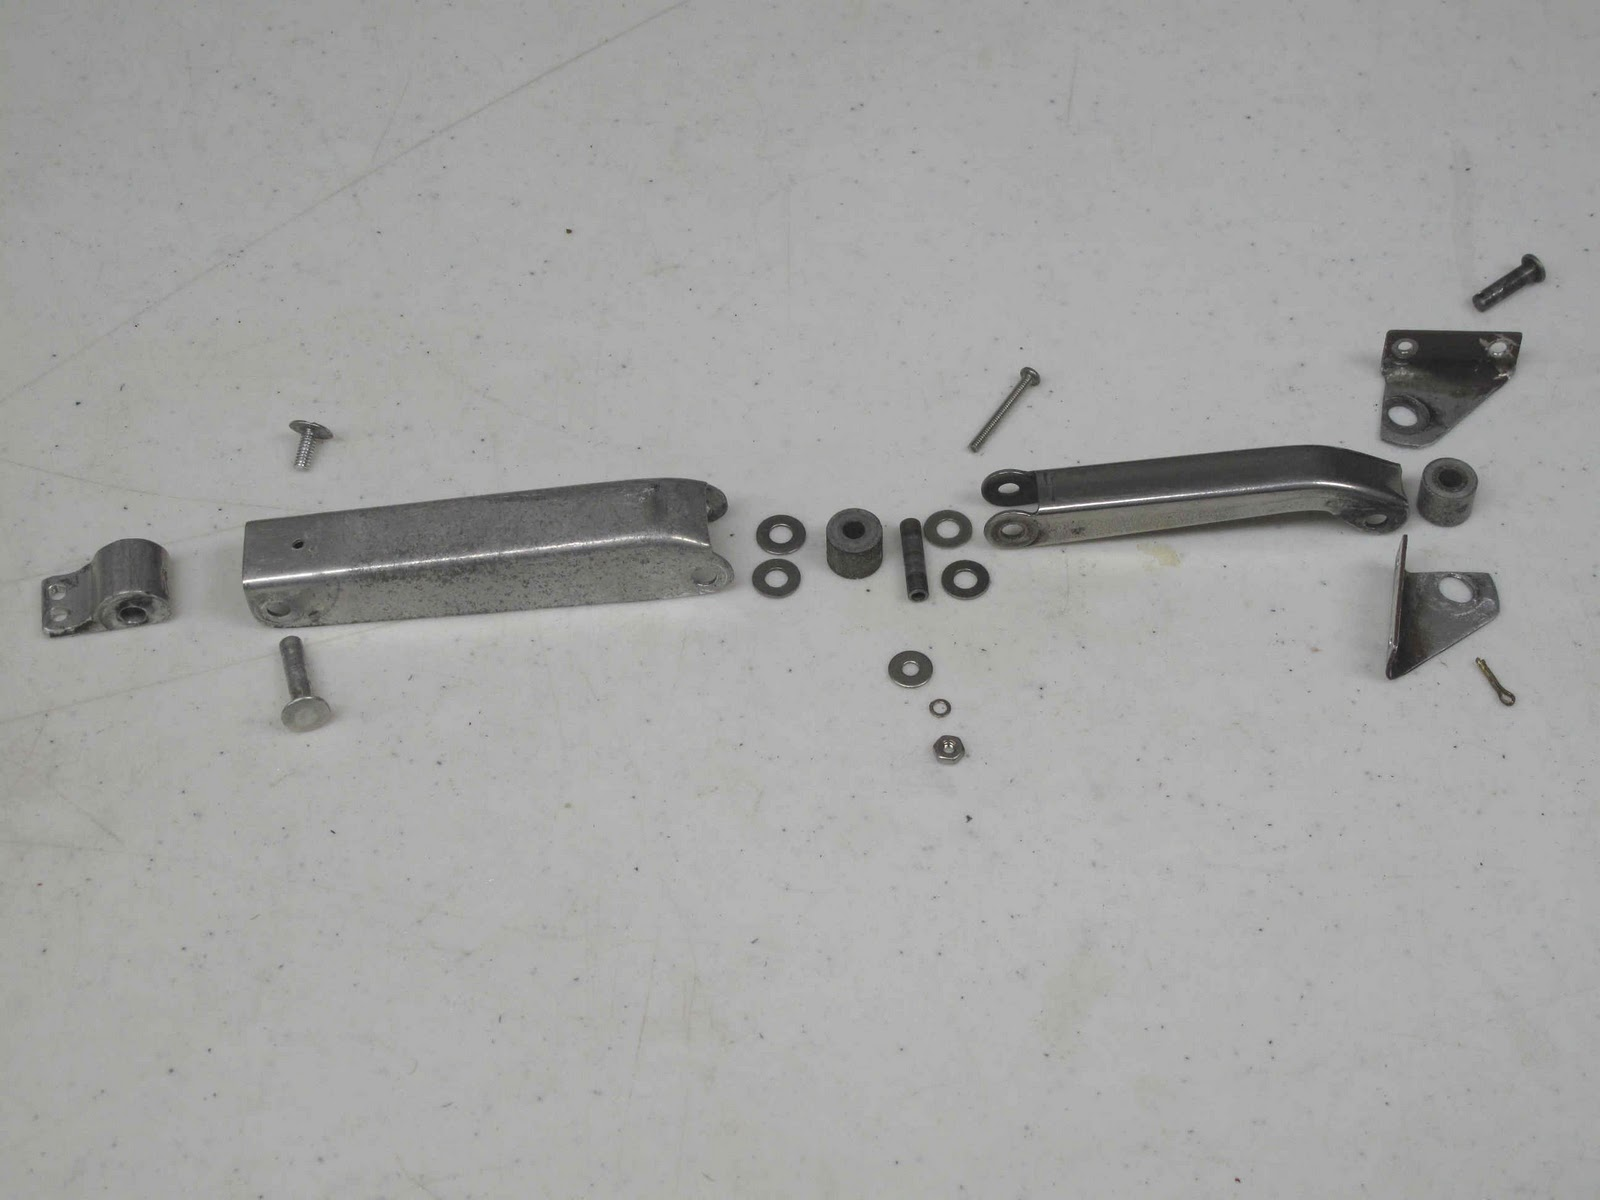 Here are the parts disassembled. The key parts are (L - R) the extruded aluminum bracket which is riveted to the window frame & Cessna 140 Rebirth: Window Latch Parts (Cessna 0411186)